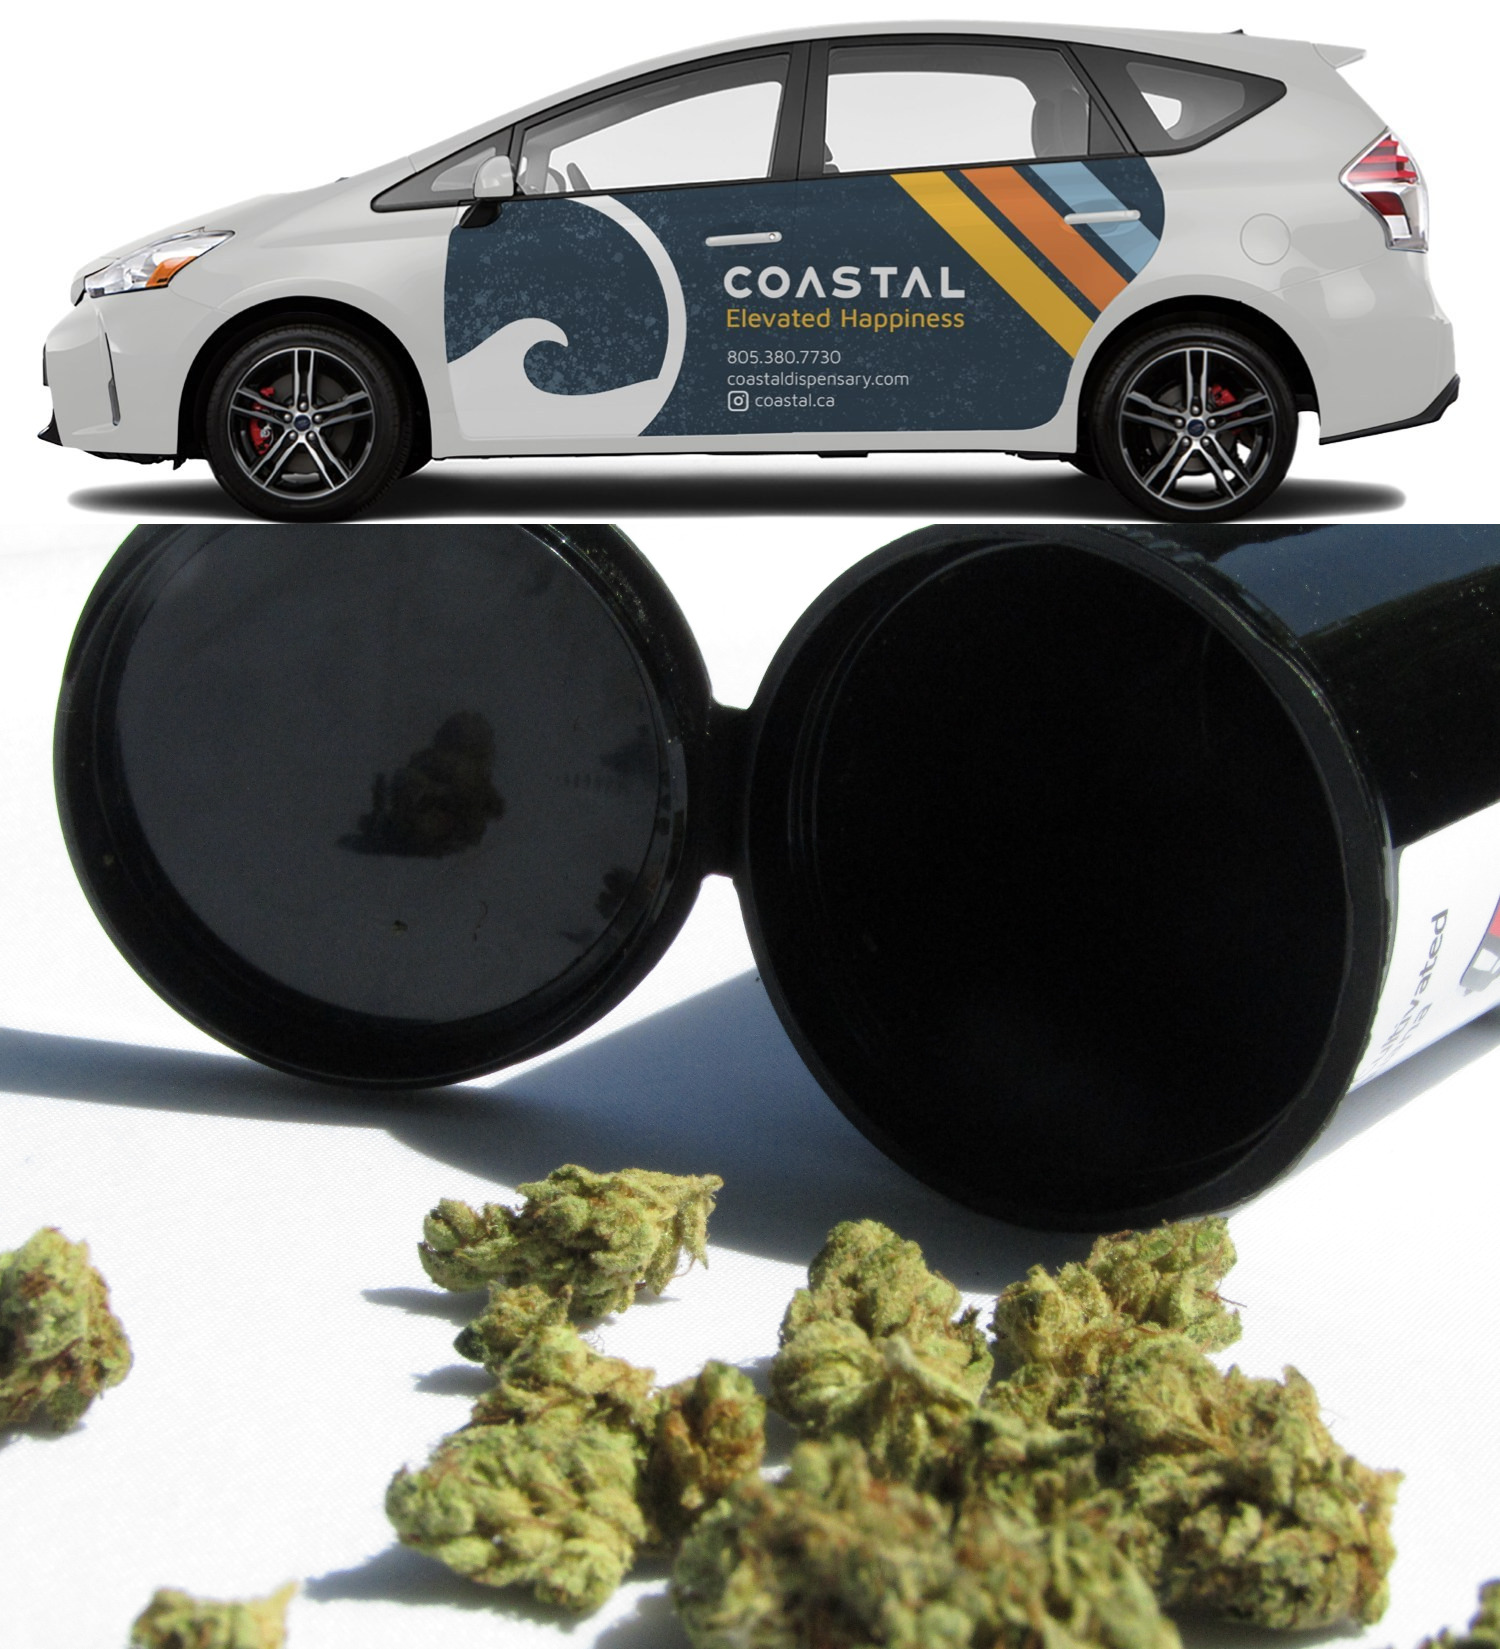 (Top) Coastal delivery car. (Bottom) Marijuana flower buds in black container.